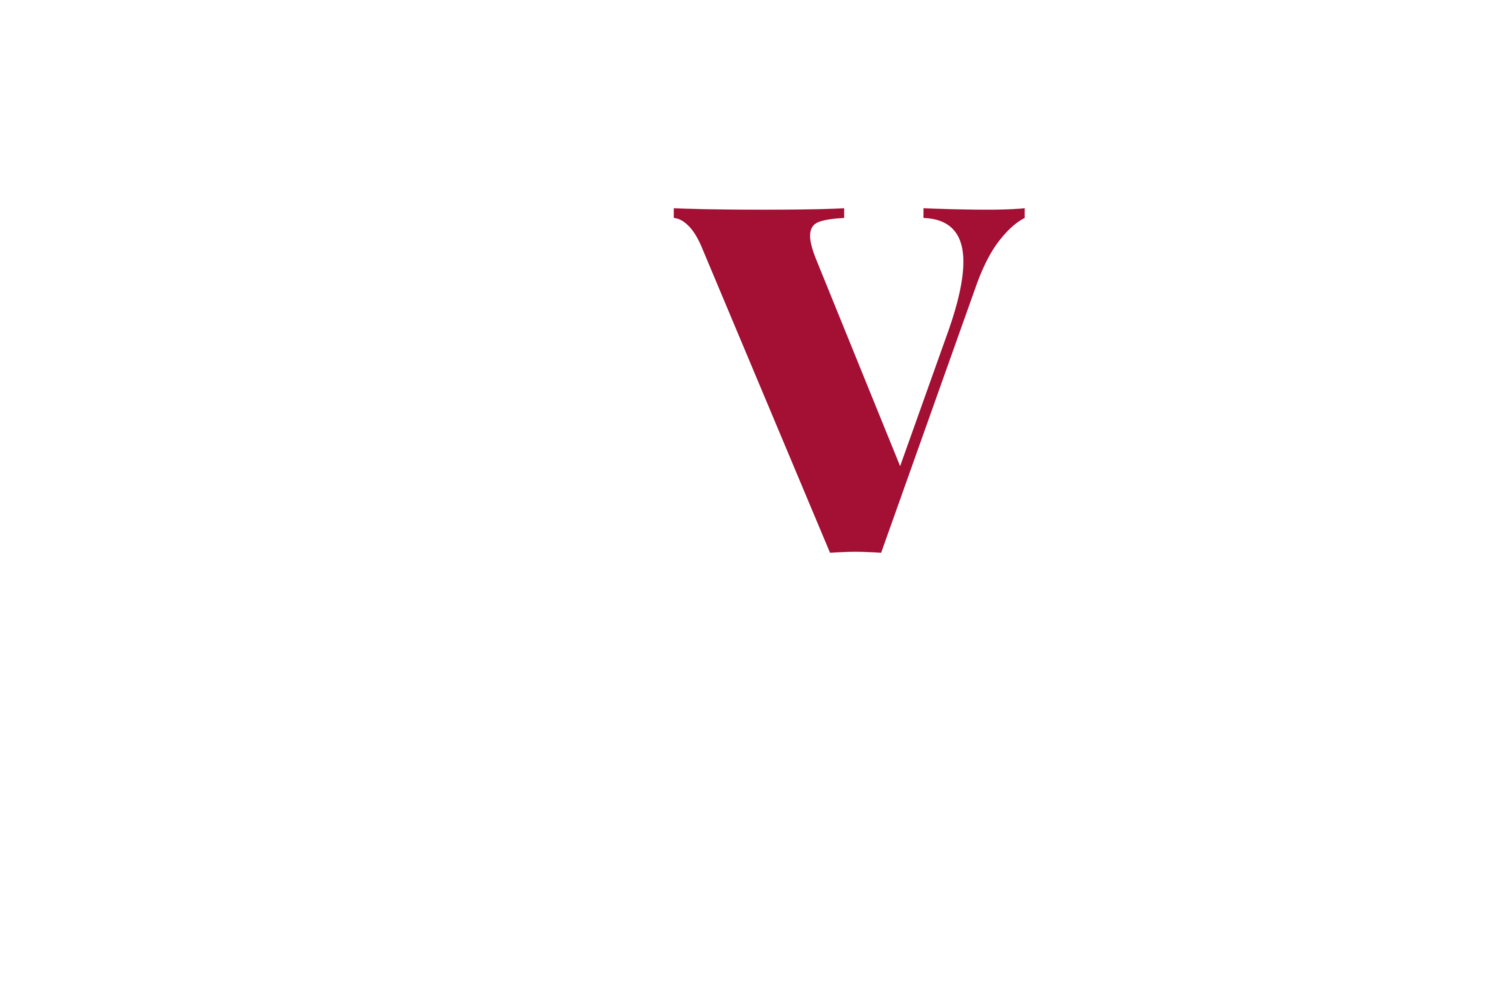 Premiere Opera Vocal Arts Institute